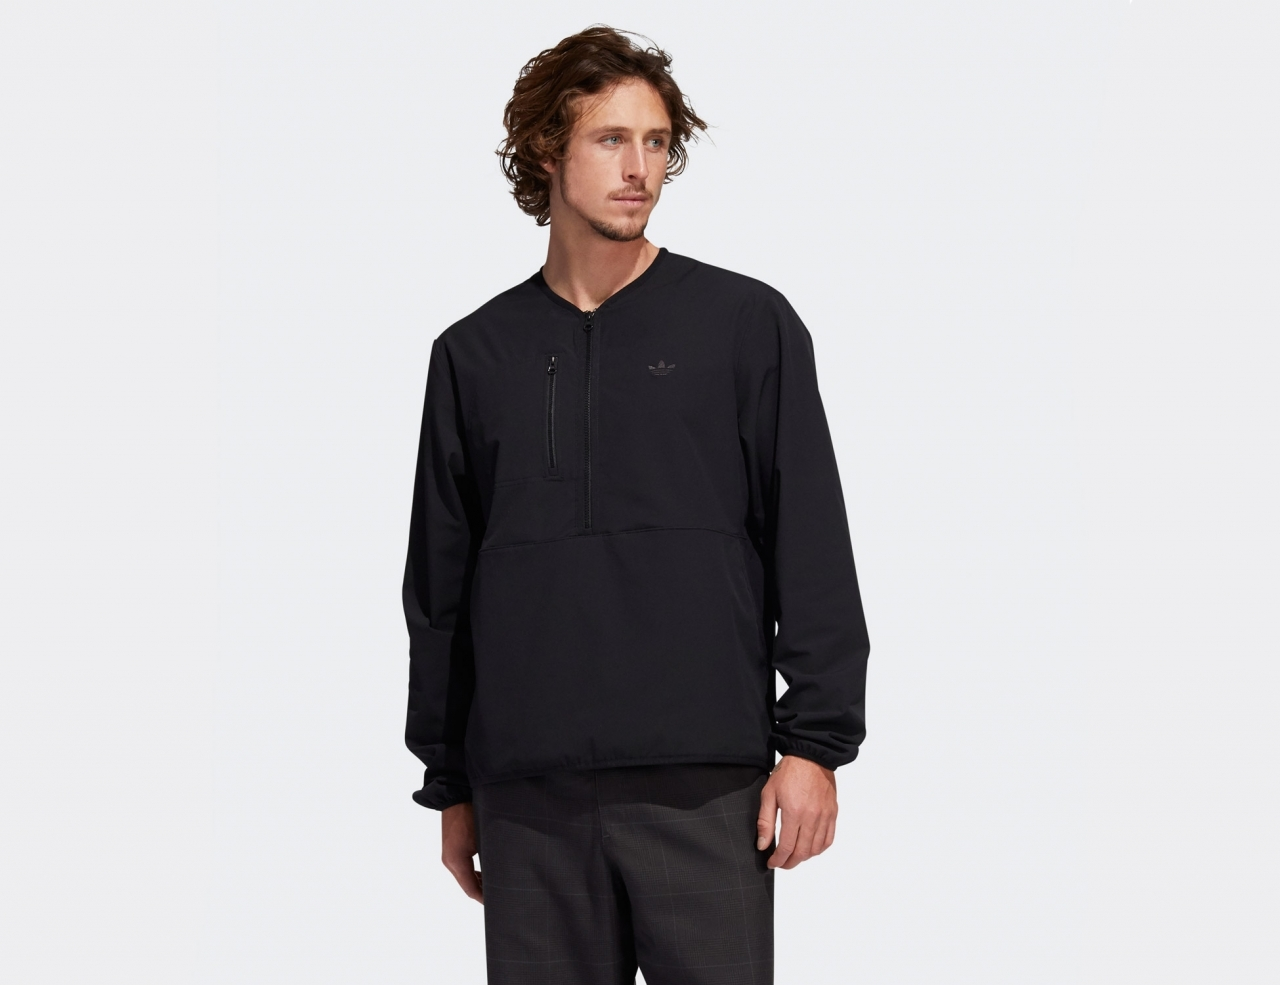 Adidas Liner Pullover - Black / Oyster White